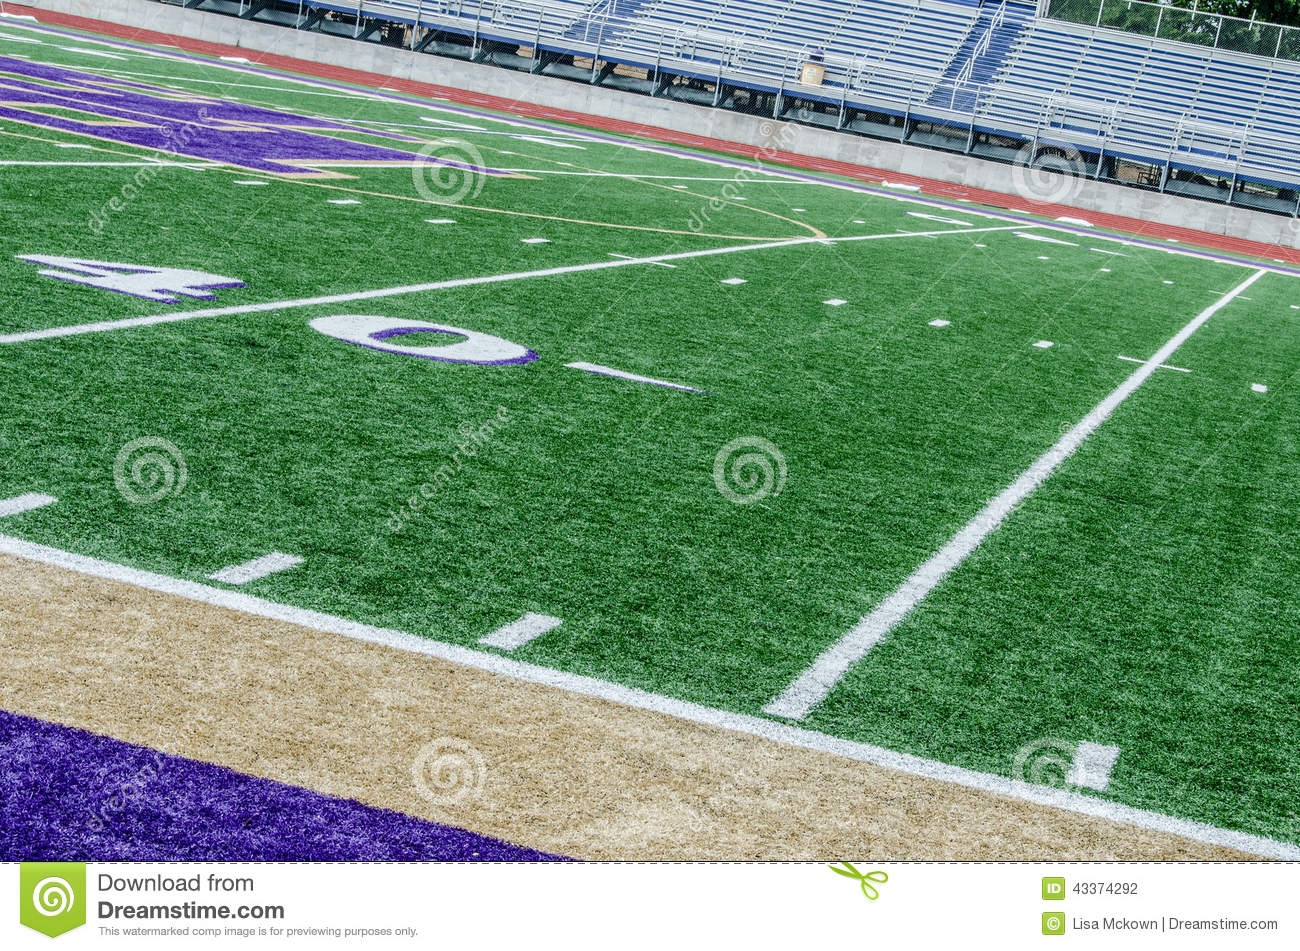 Small Soccer Field In Backyard : Football field in a small town at the 40 yard line with empty stands